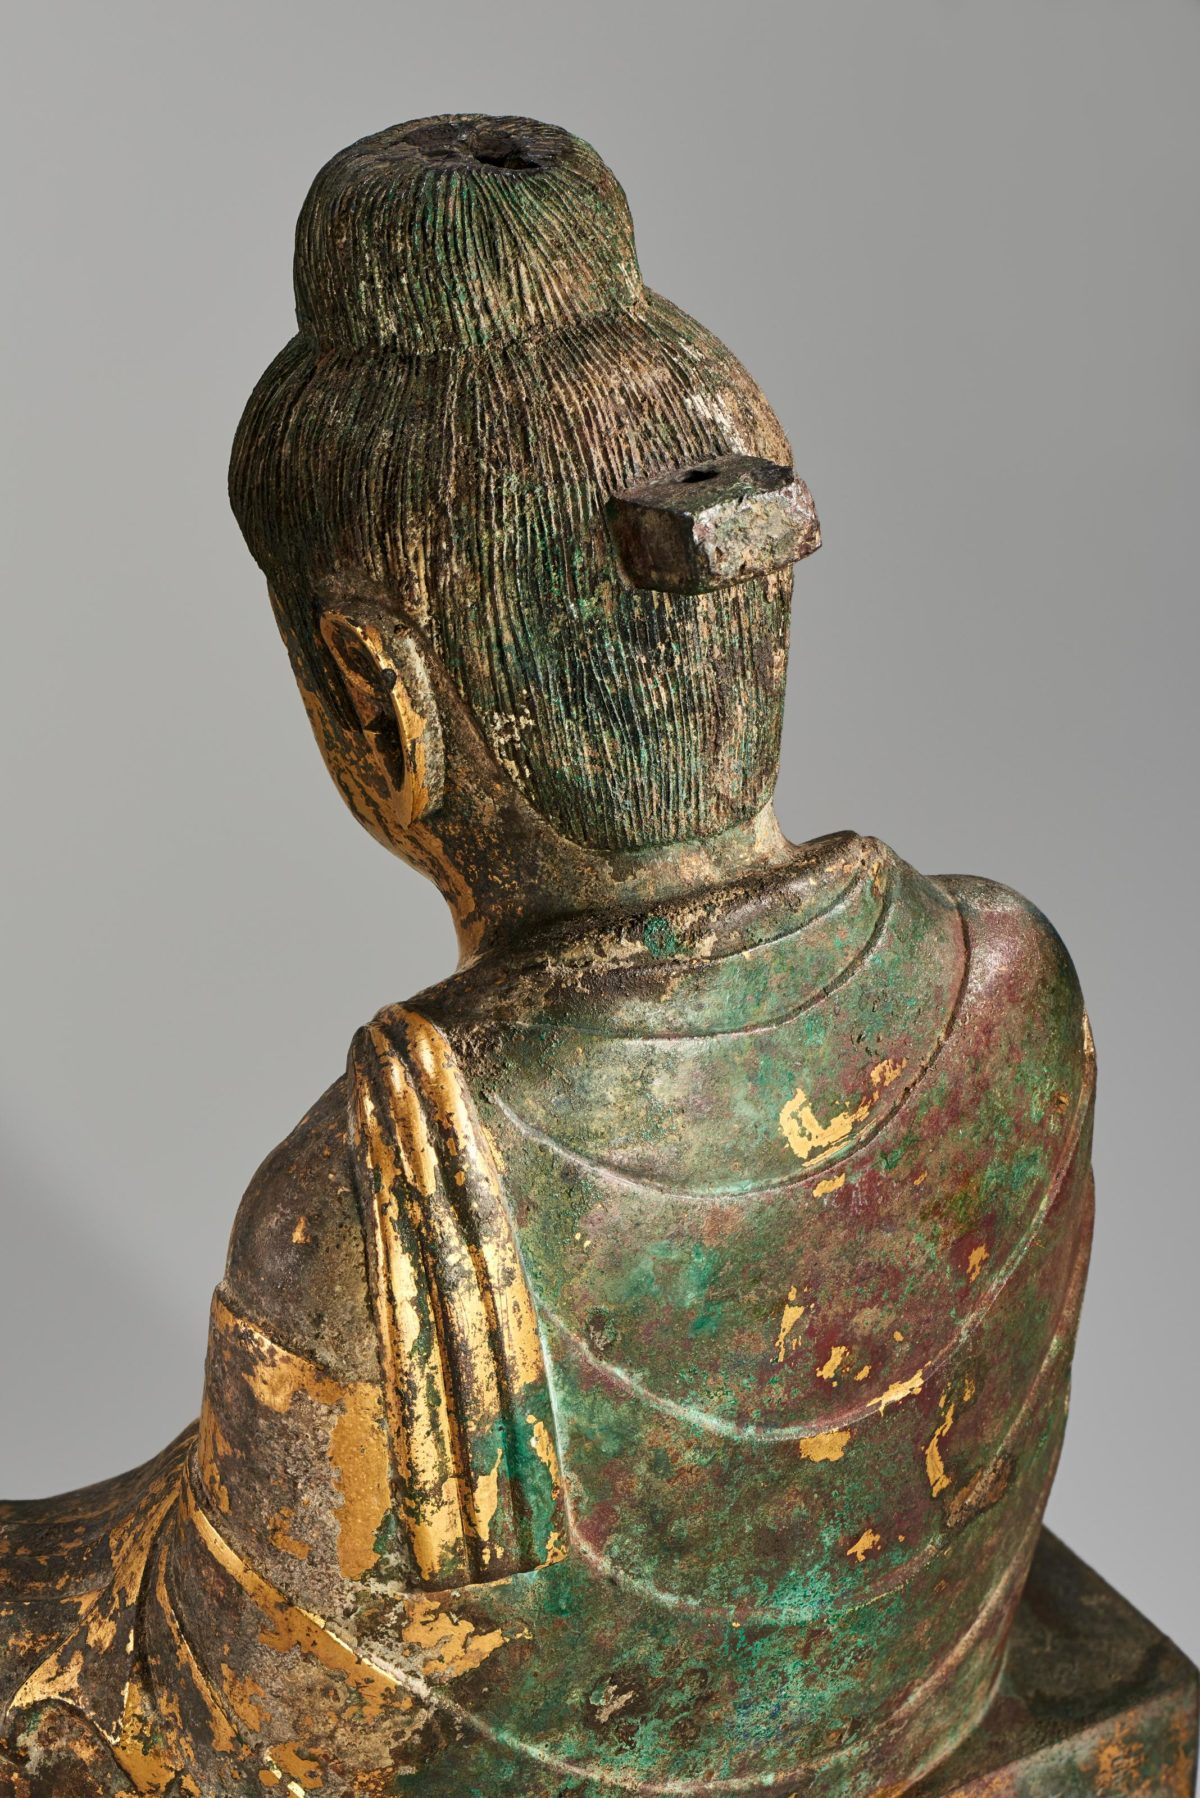 Close up view of the back of the head of a golden Buddha statue.